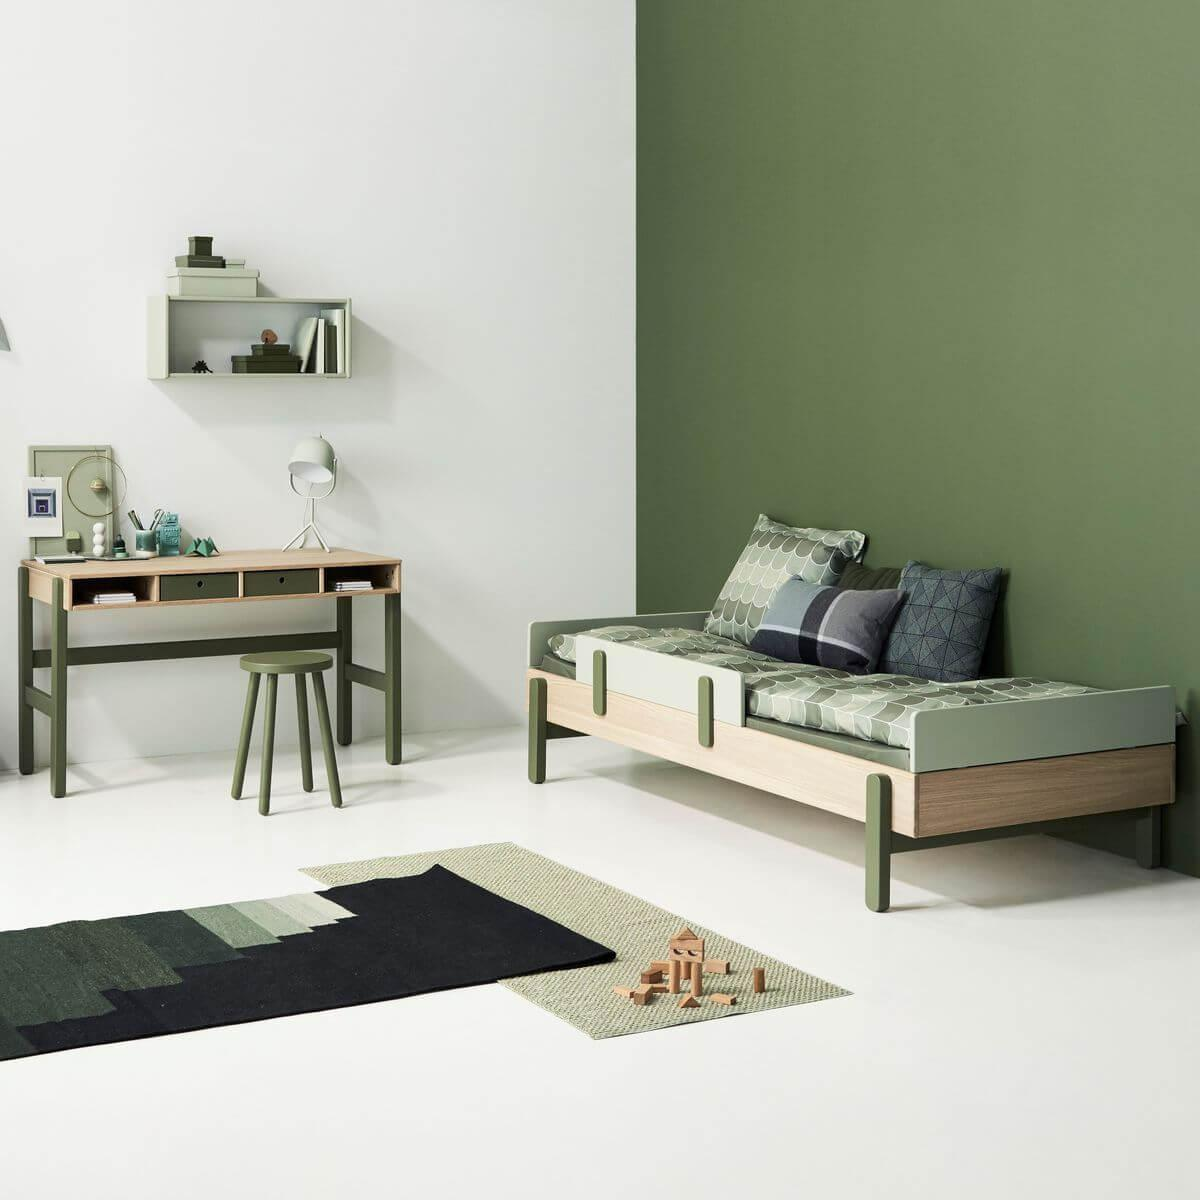 Cama simple 90x200cm POPSICLE Flexa roble-blueberry